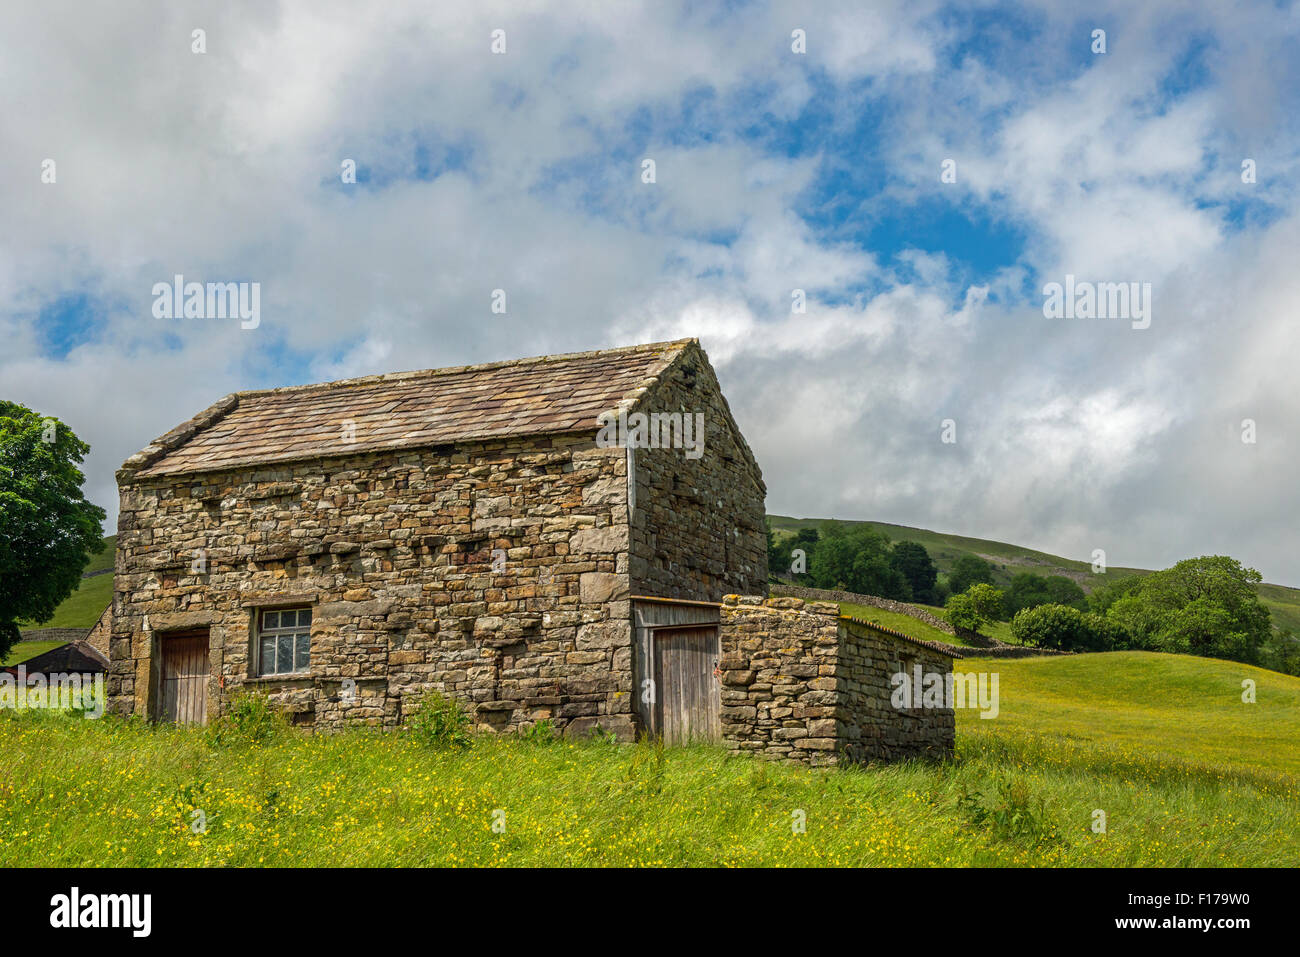 Yorkshire Dales barn at Muker in Swaledale in the summer - Stock Image